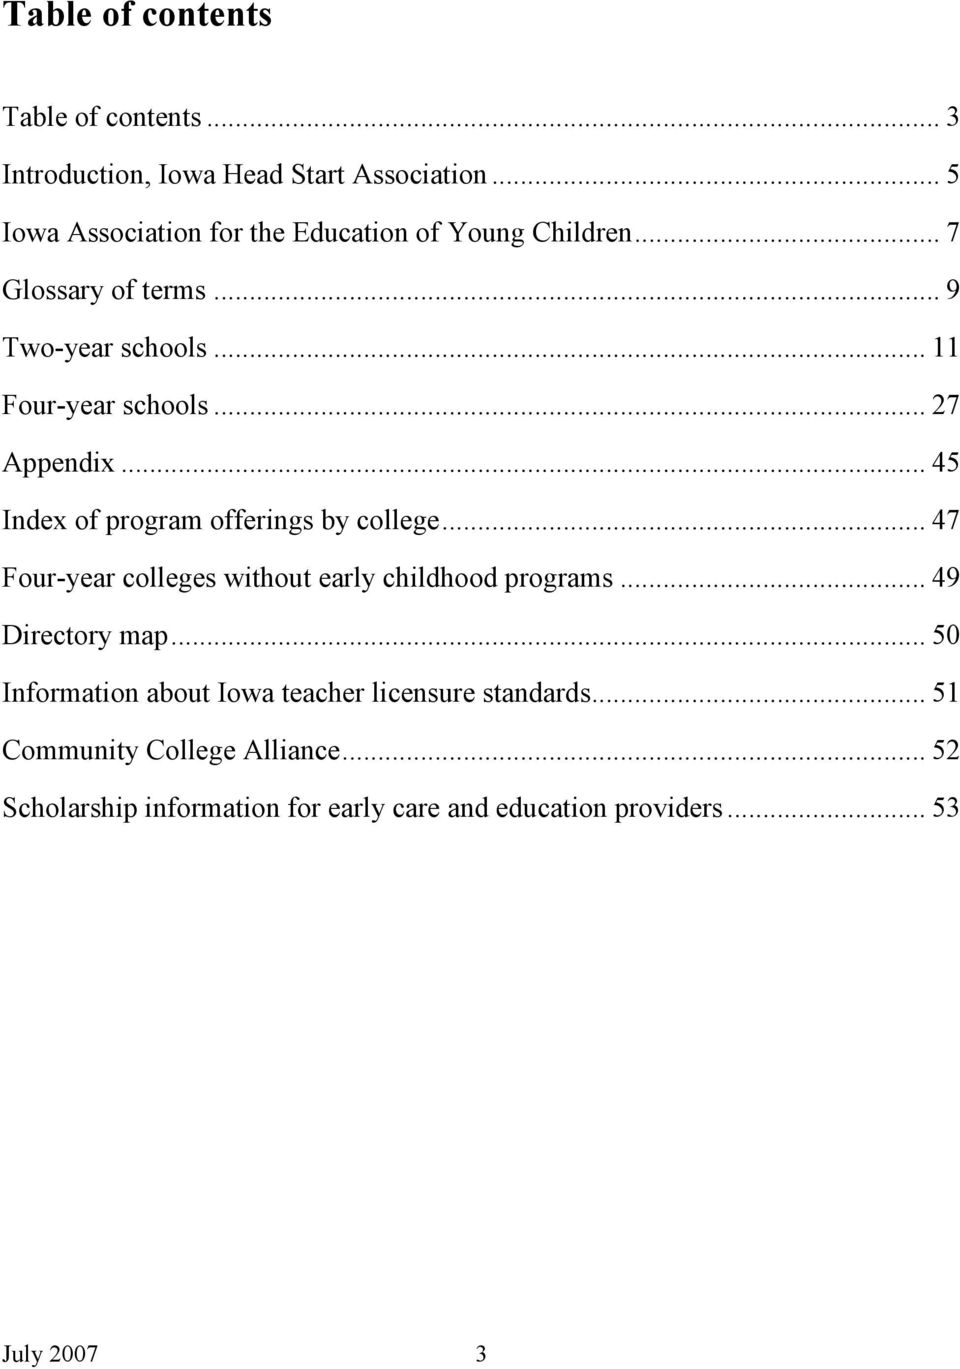 .. 27 Appendix... 45 Index of program offerings by college... 47 Four-year colleges without early childhood programs.